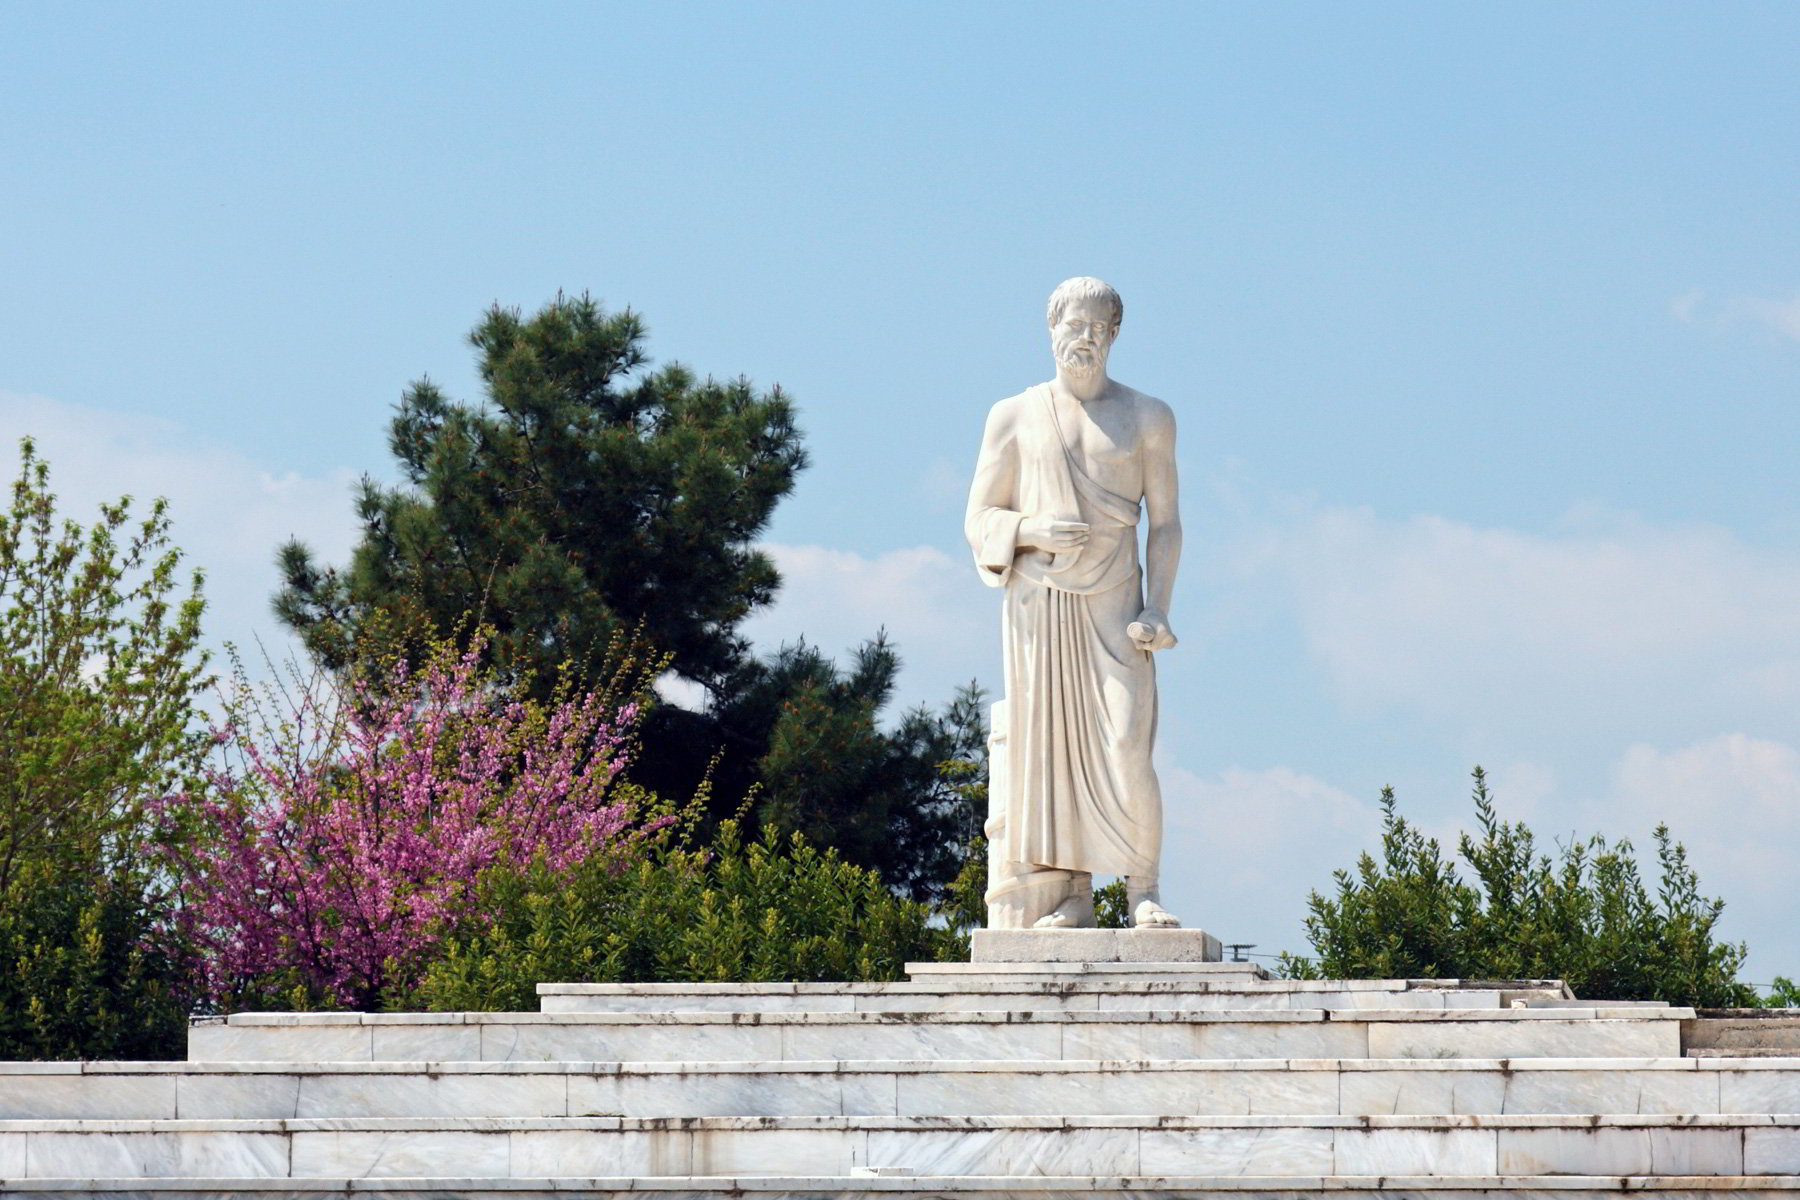 The Tomb of Hippocrates